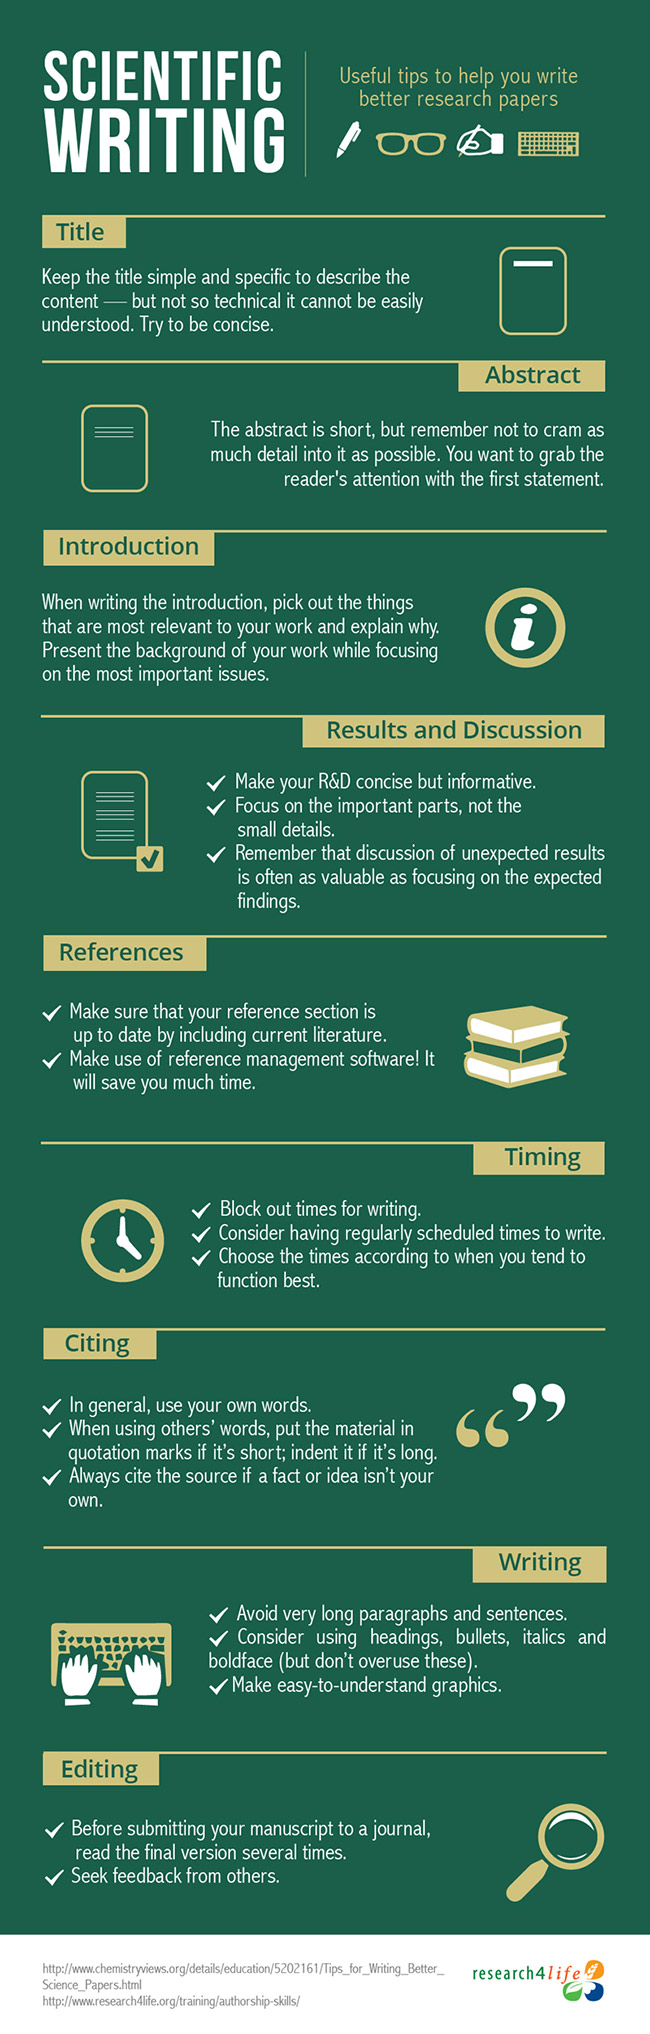 Essay On Shakespeare  Learning To Read And Write Frederick Douglass Essay also Revise Essay Online Infographic How To Write Better Science Papers Reflective Essay Introduction